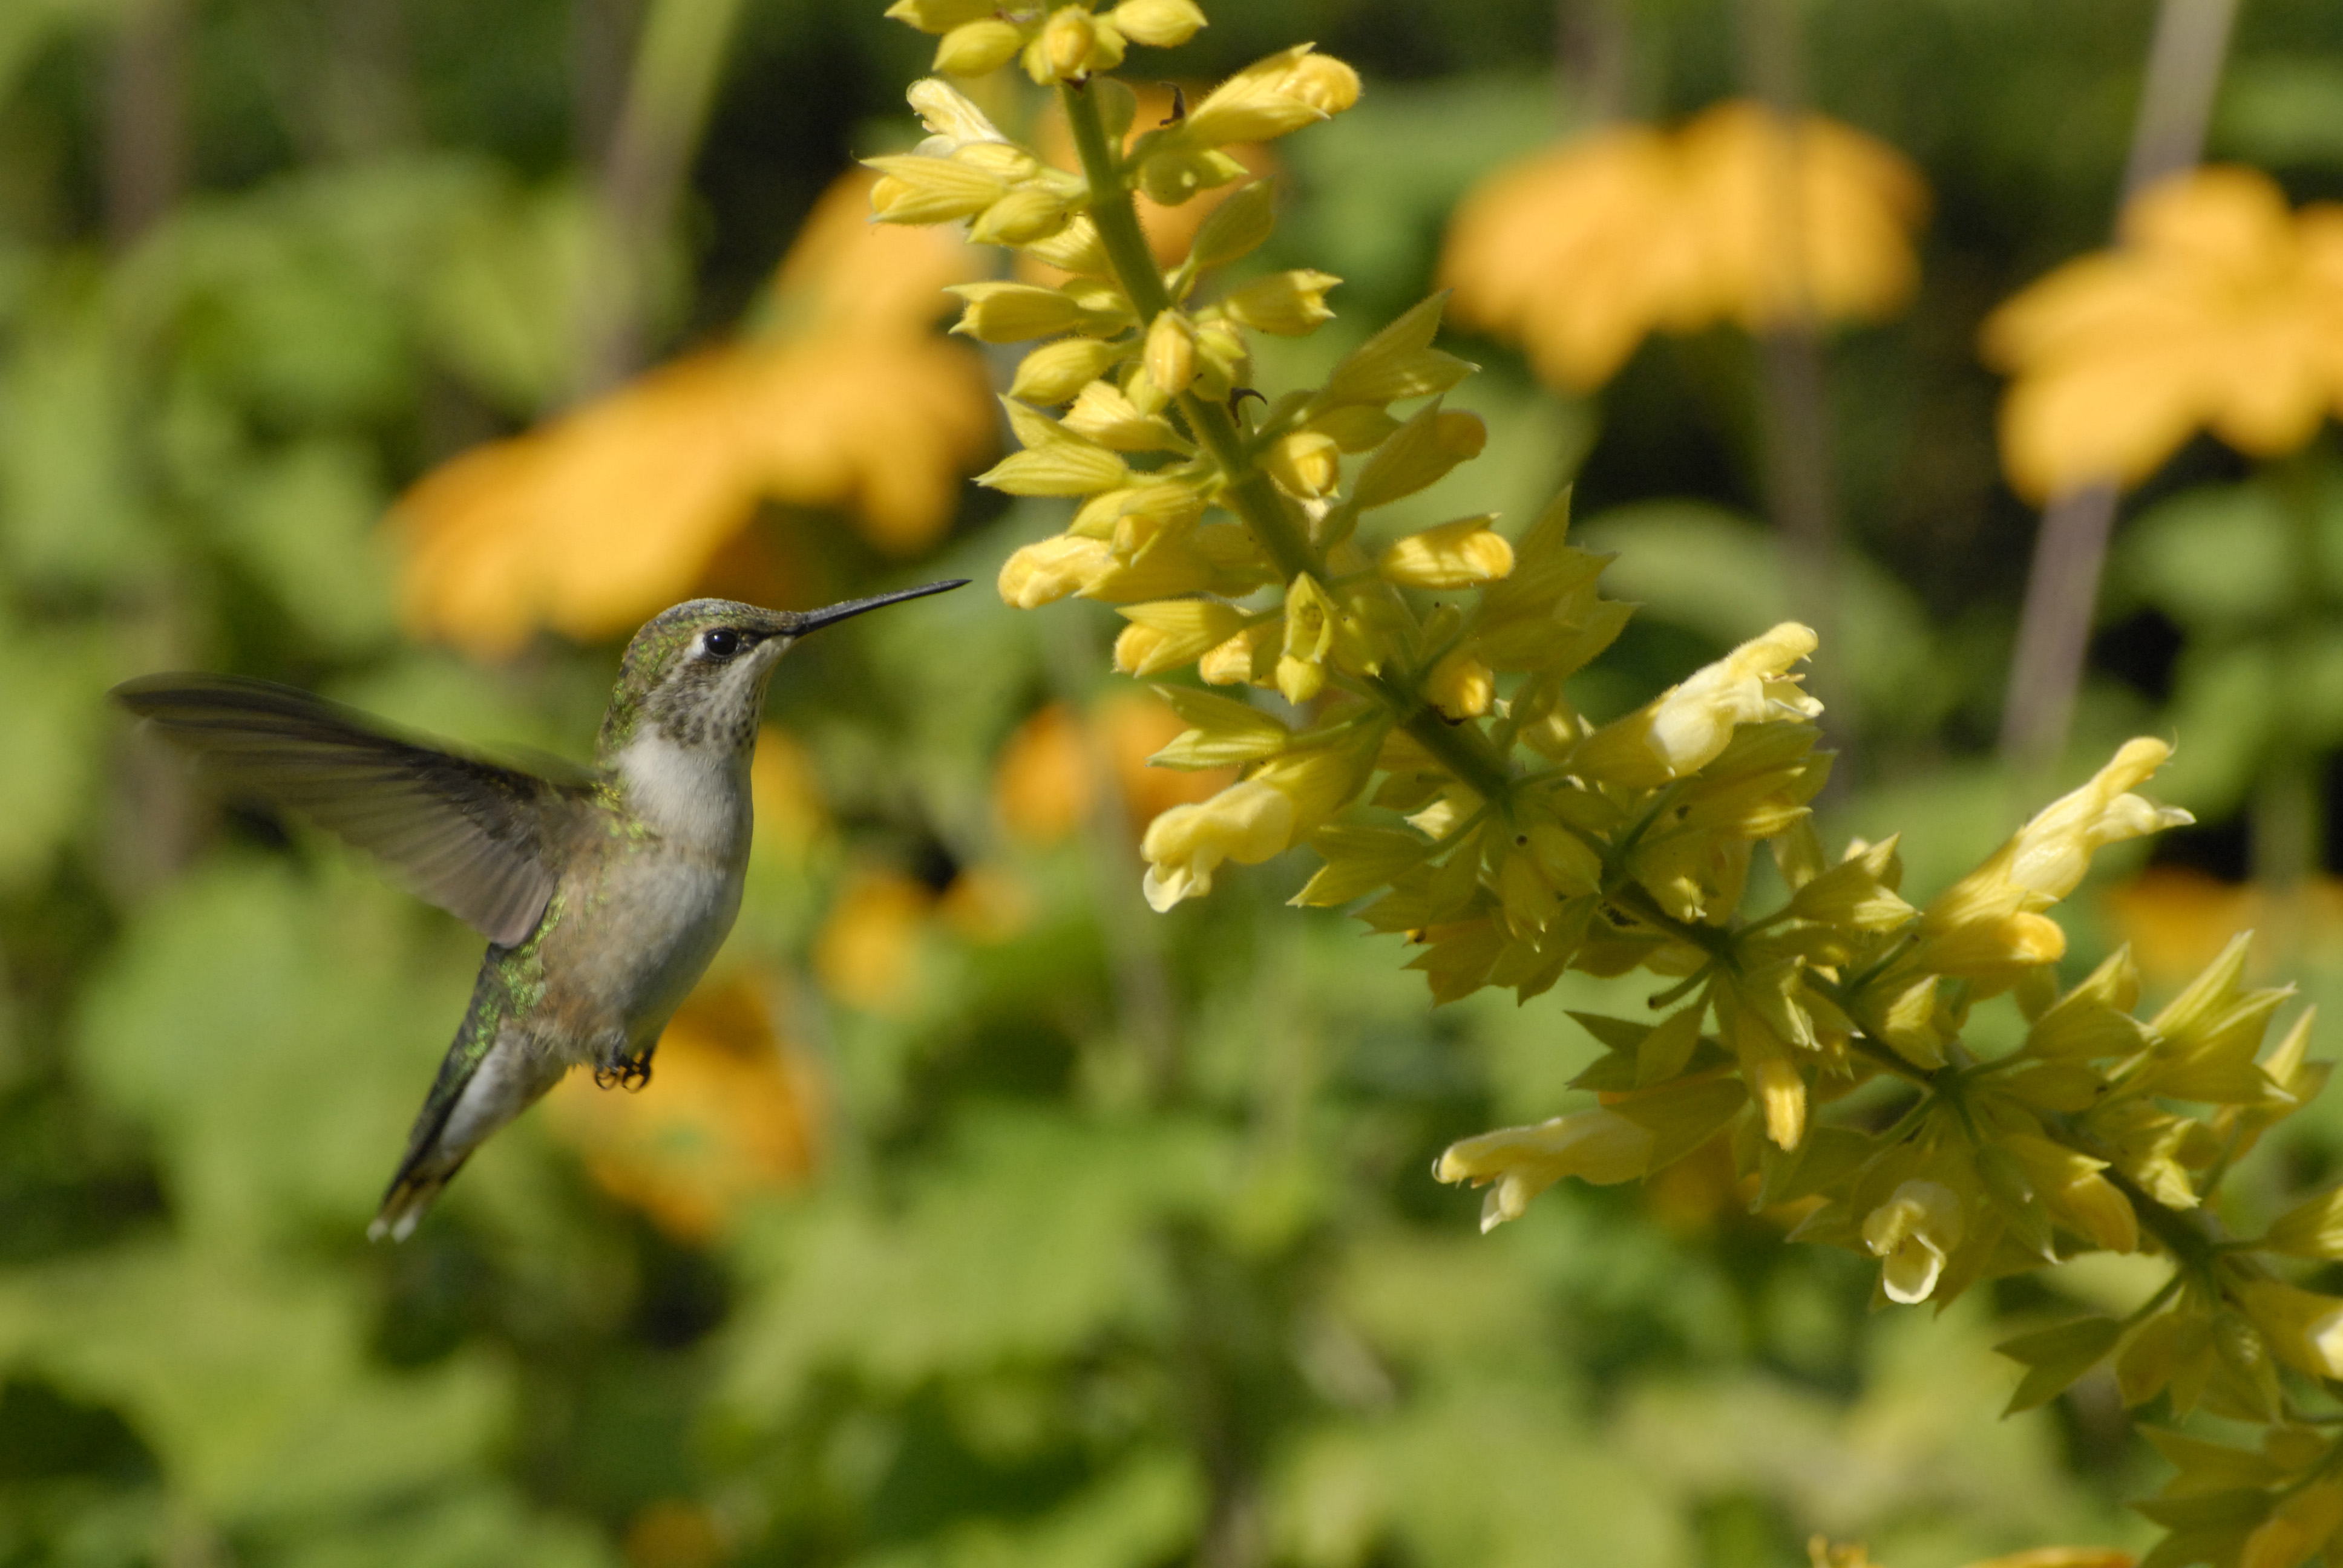 A female ruby-throated hummingbird enjoys a sip of salvia nectar in the Circle Garden in summer